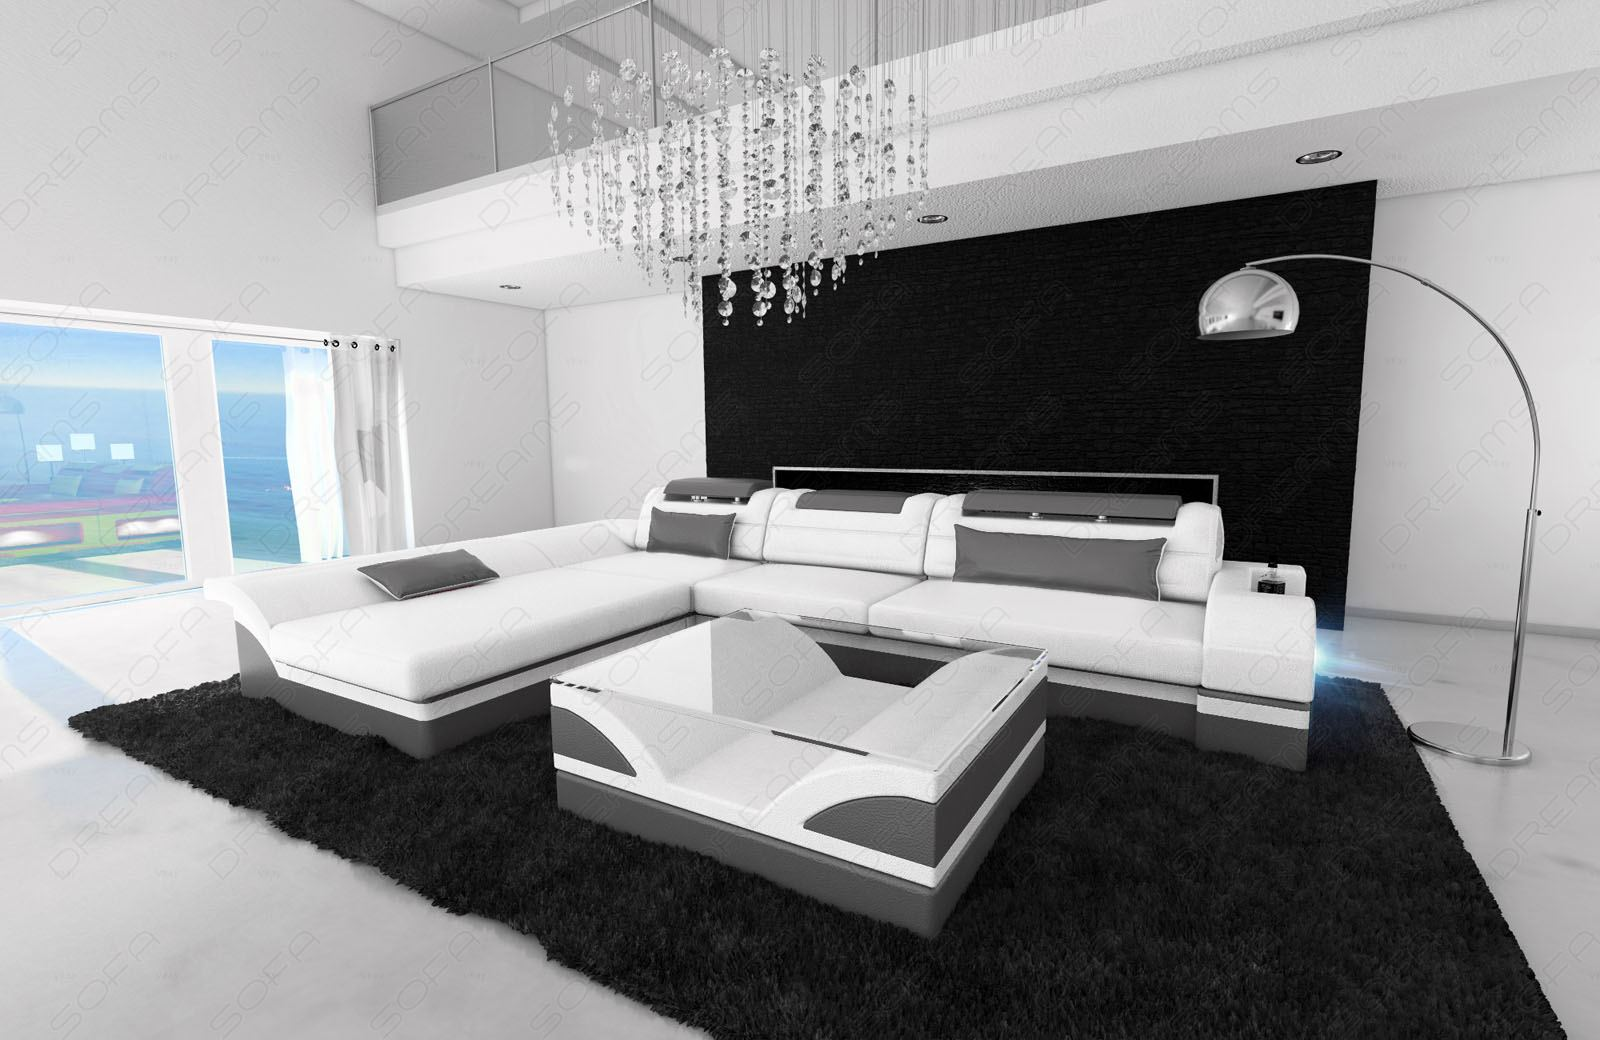 ledersofa monza l form design ledercouch luxussofa recamiere und led beleuchtung ebay. Black Bedroom Furniture Sets. Home Design Ideas